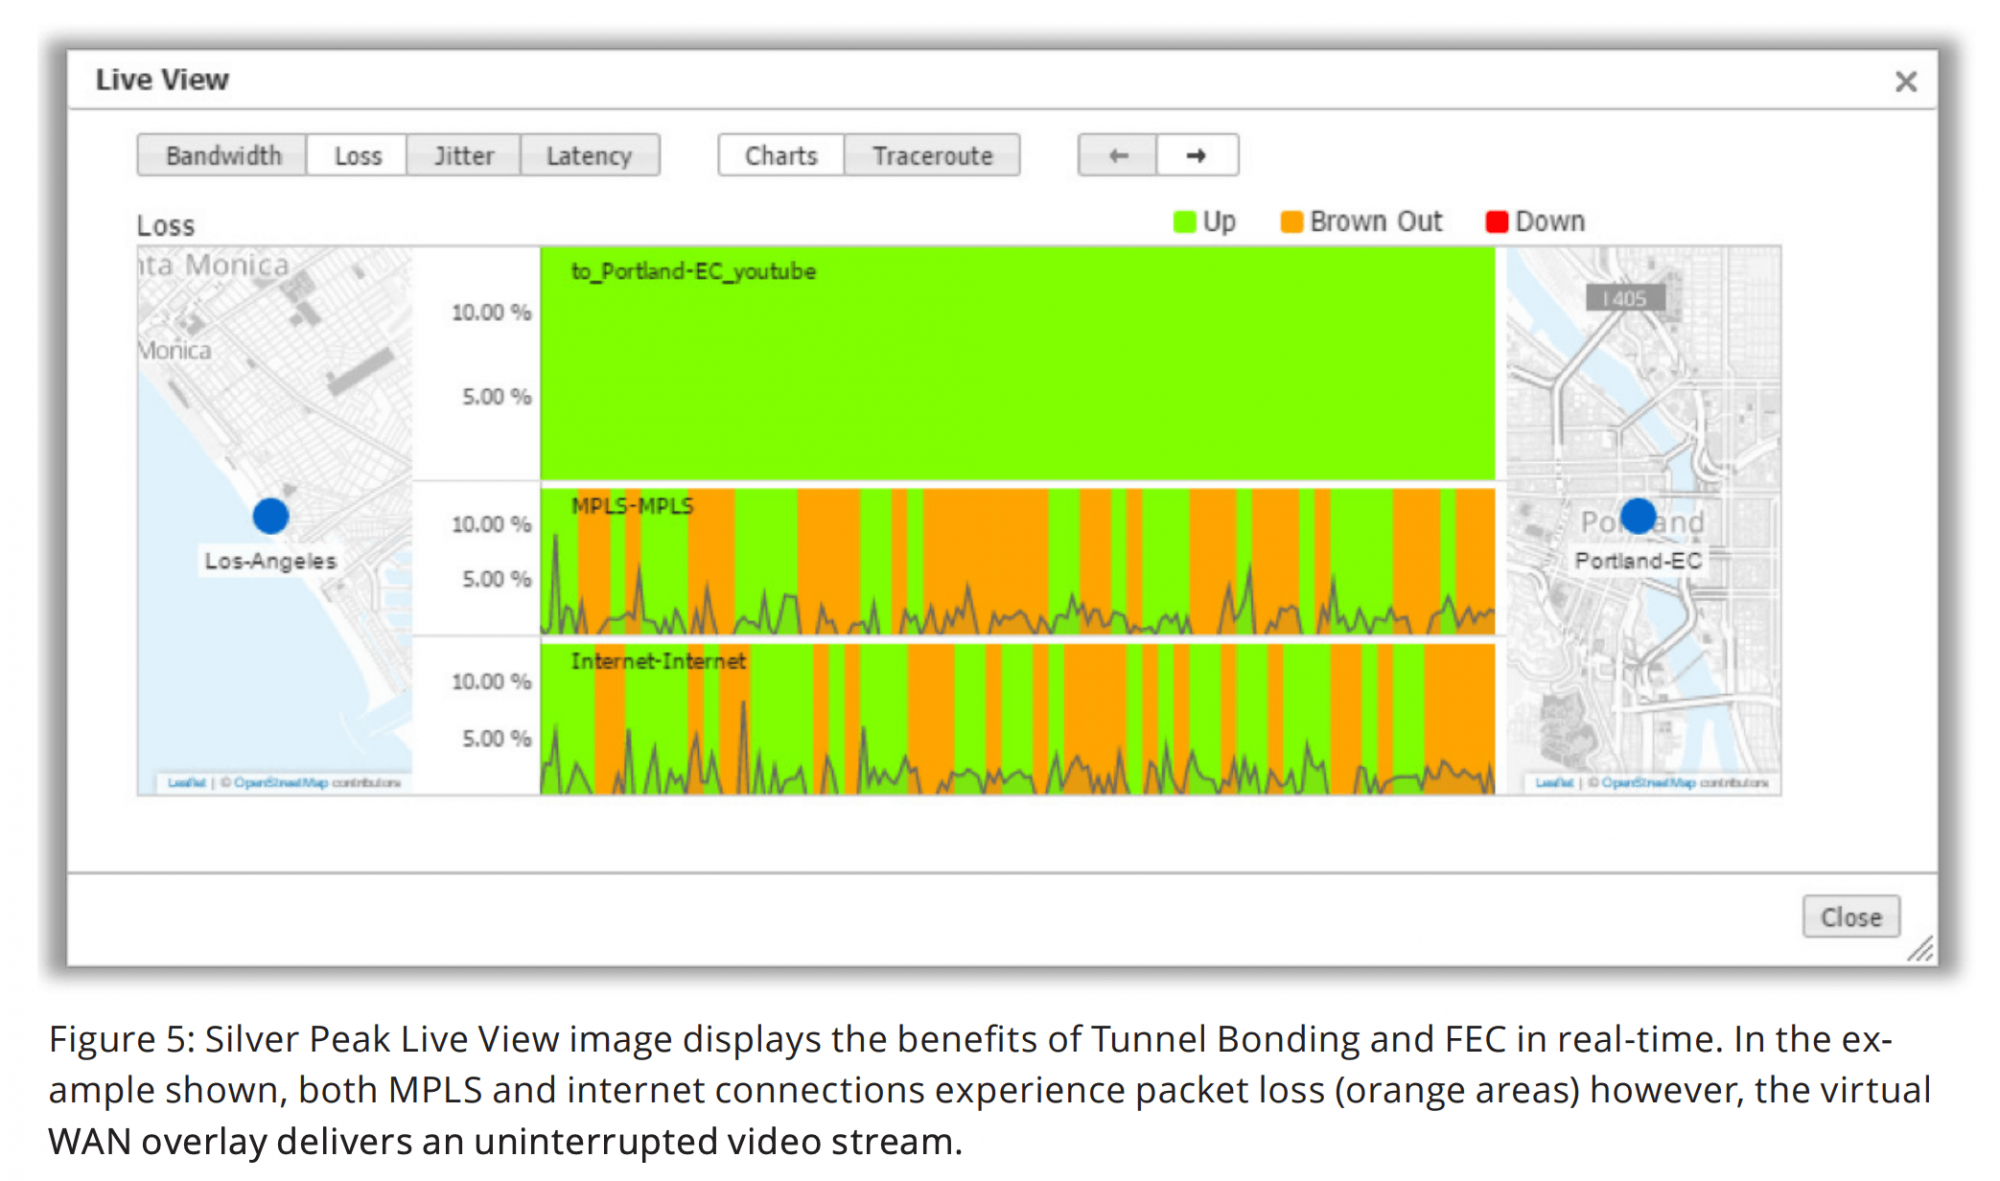 Figure 5: Silver Peak Live View image displays the benefits of Tunnel Bonding and FEC in real-time. In the example shown, both MPLS and internet connections experience packet loss (orange areas) however, the virtual WAN overlay delivers an uninterrupted video stream.